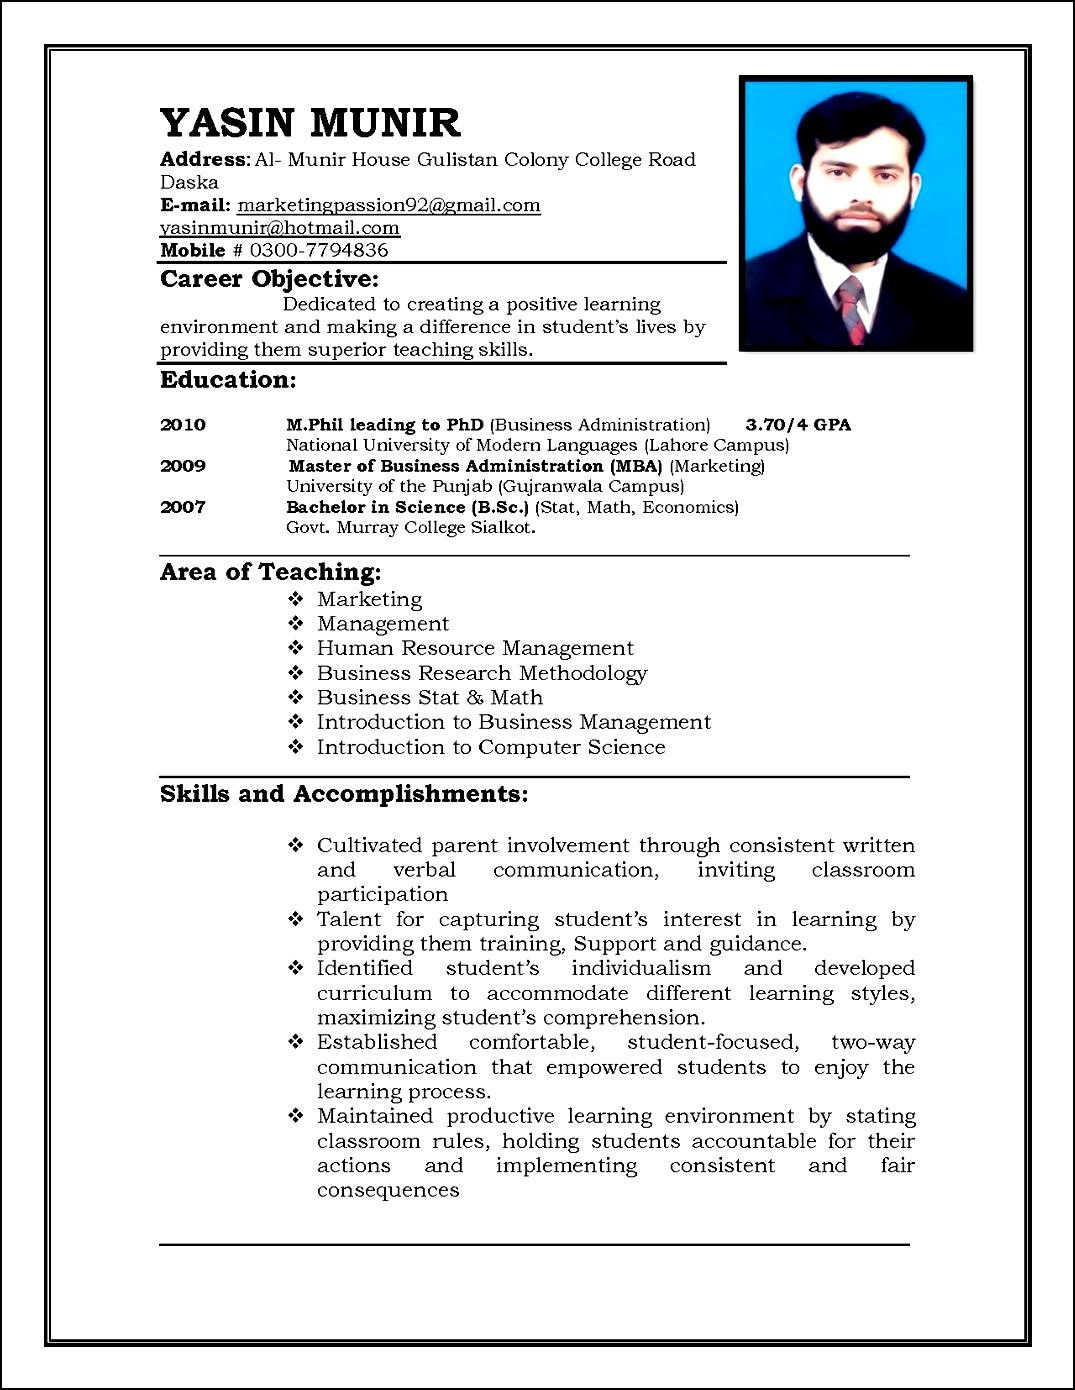 Sample-Curriculum-Vitae-For-Teachers Sample Curriculum Vitae Format Professor on download free, professors academic professional, current type, best dentist, lhv base, standard bou,